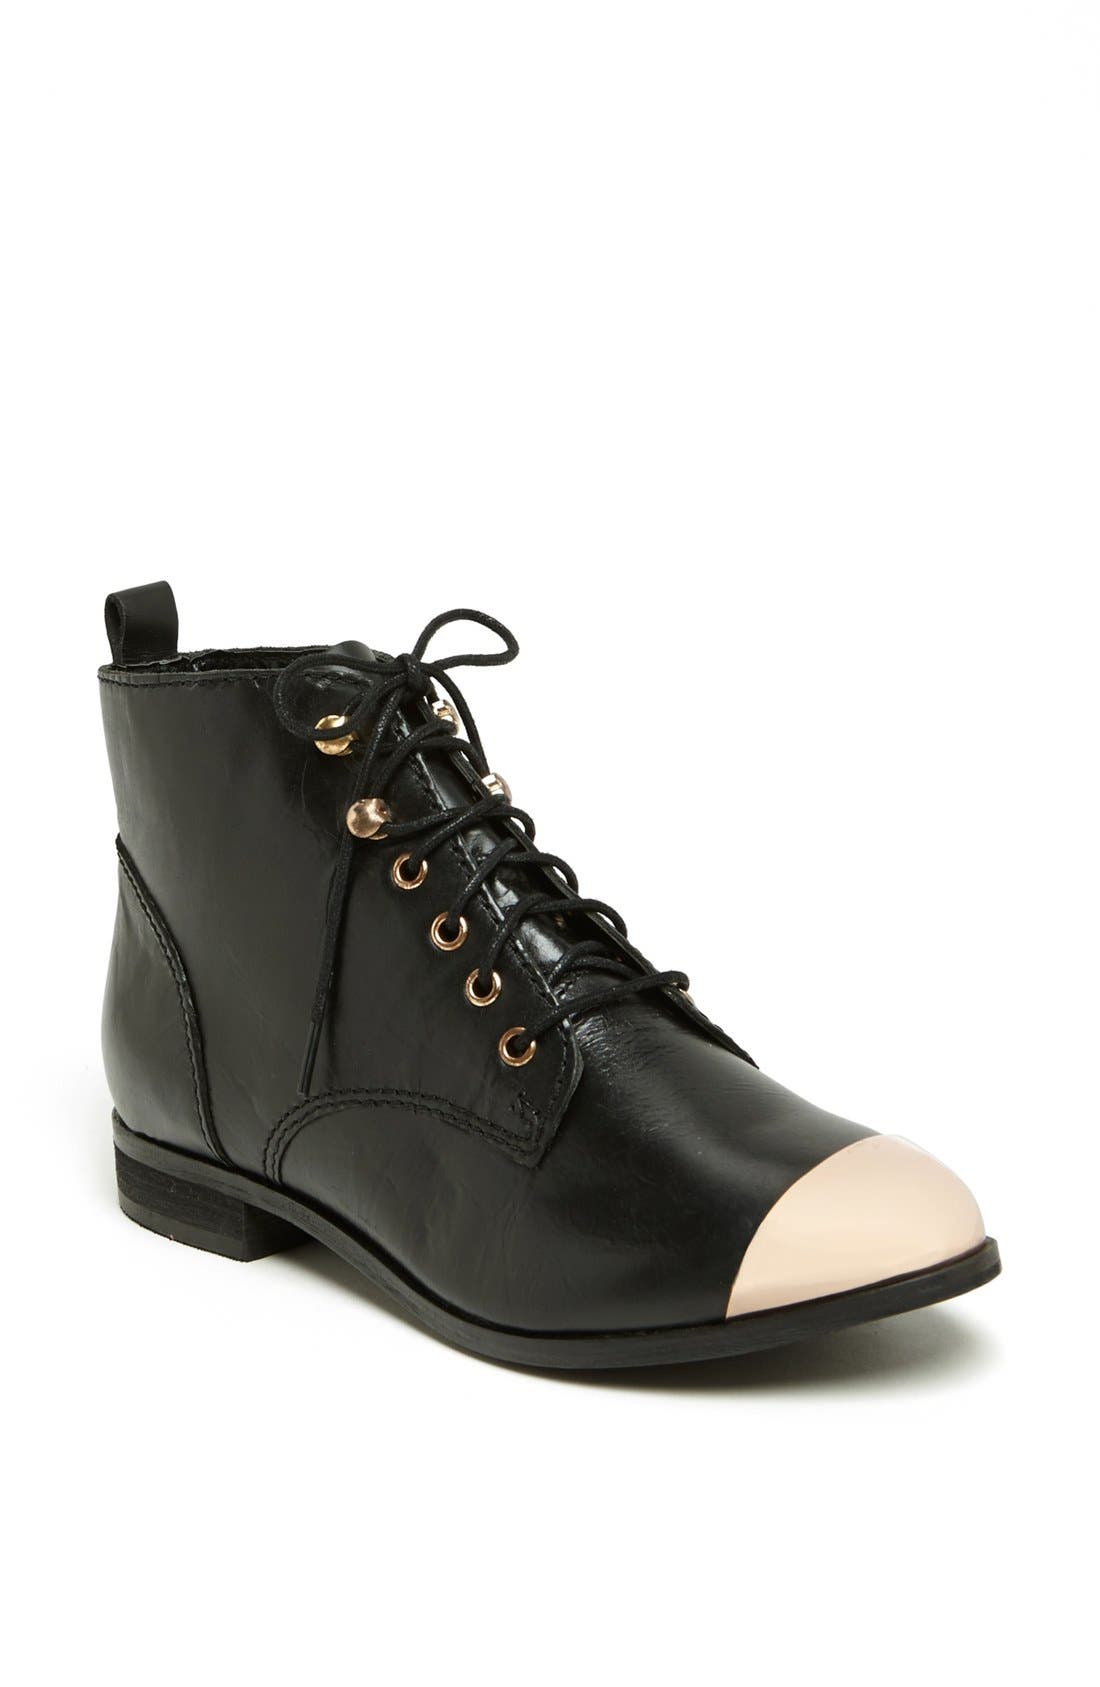 Alternate Image 1 Selected - Topshop 'Mystify' Toe Cap Bootie